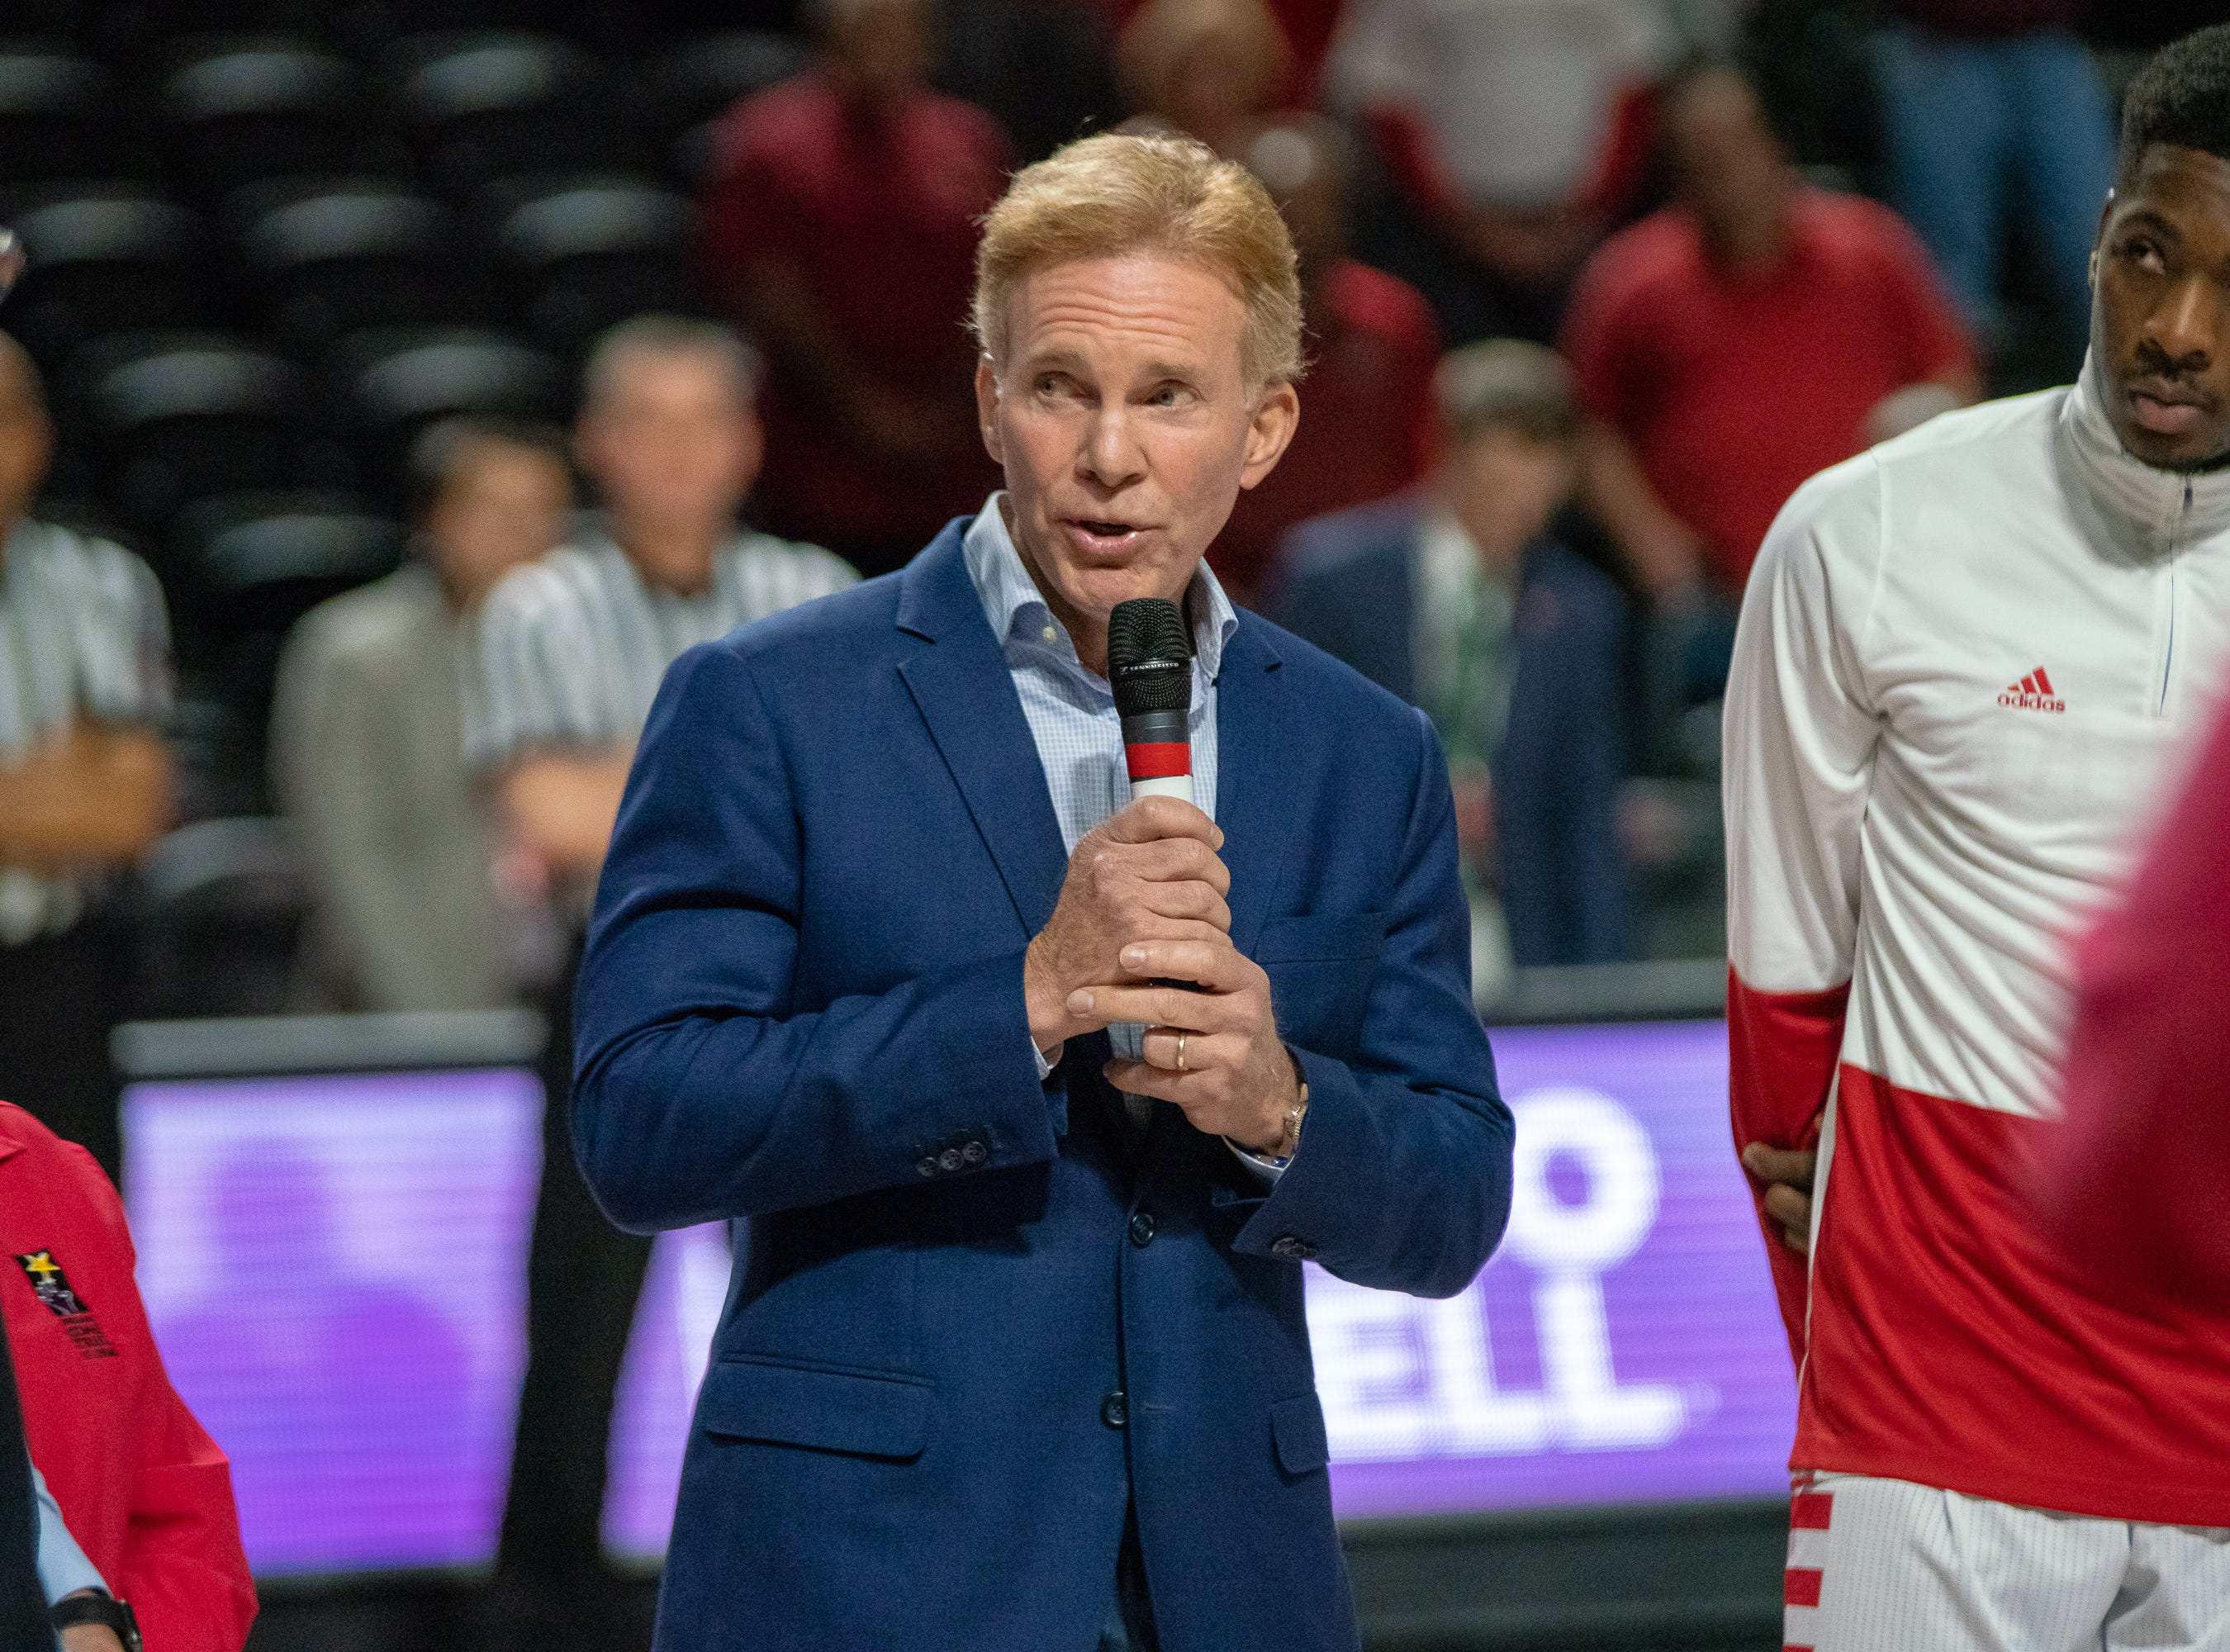 Bob Giles speaks to the crowd before the game as the Ragin' Cajuns take on the Georgia Southern Eagles at the Cajundome on Feb. 6, 2019.